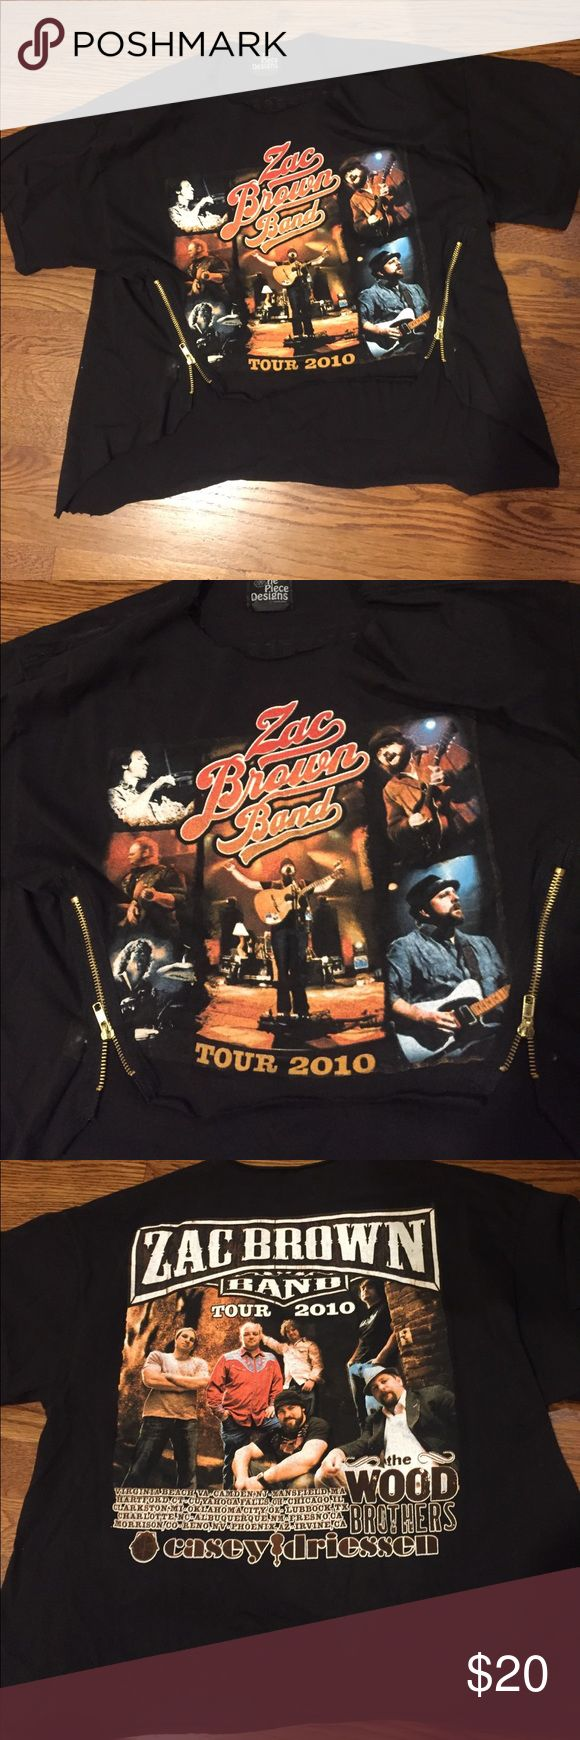 zac brown band concert tee front zippers, cropped in the front & long in the back, loose boxy fit One Piece Designs Tops Tees - Short Sleeve